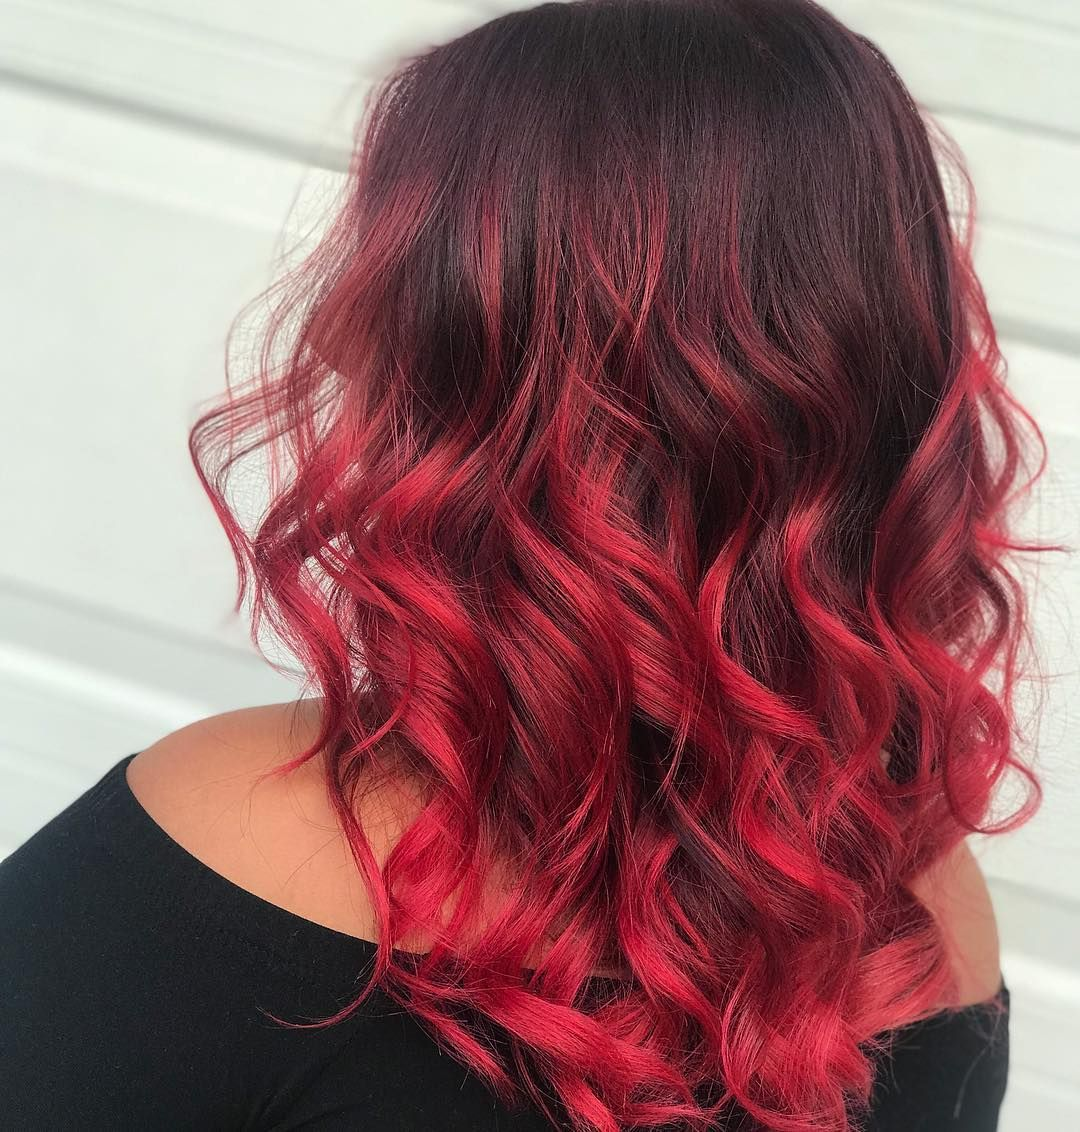 This keraluminous color melt by lextrela has us like see the